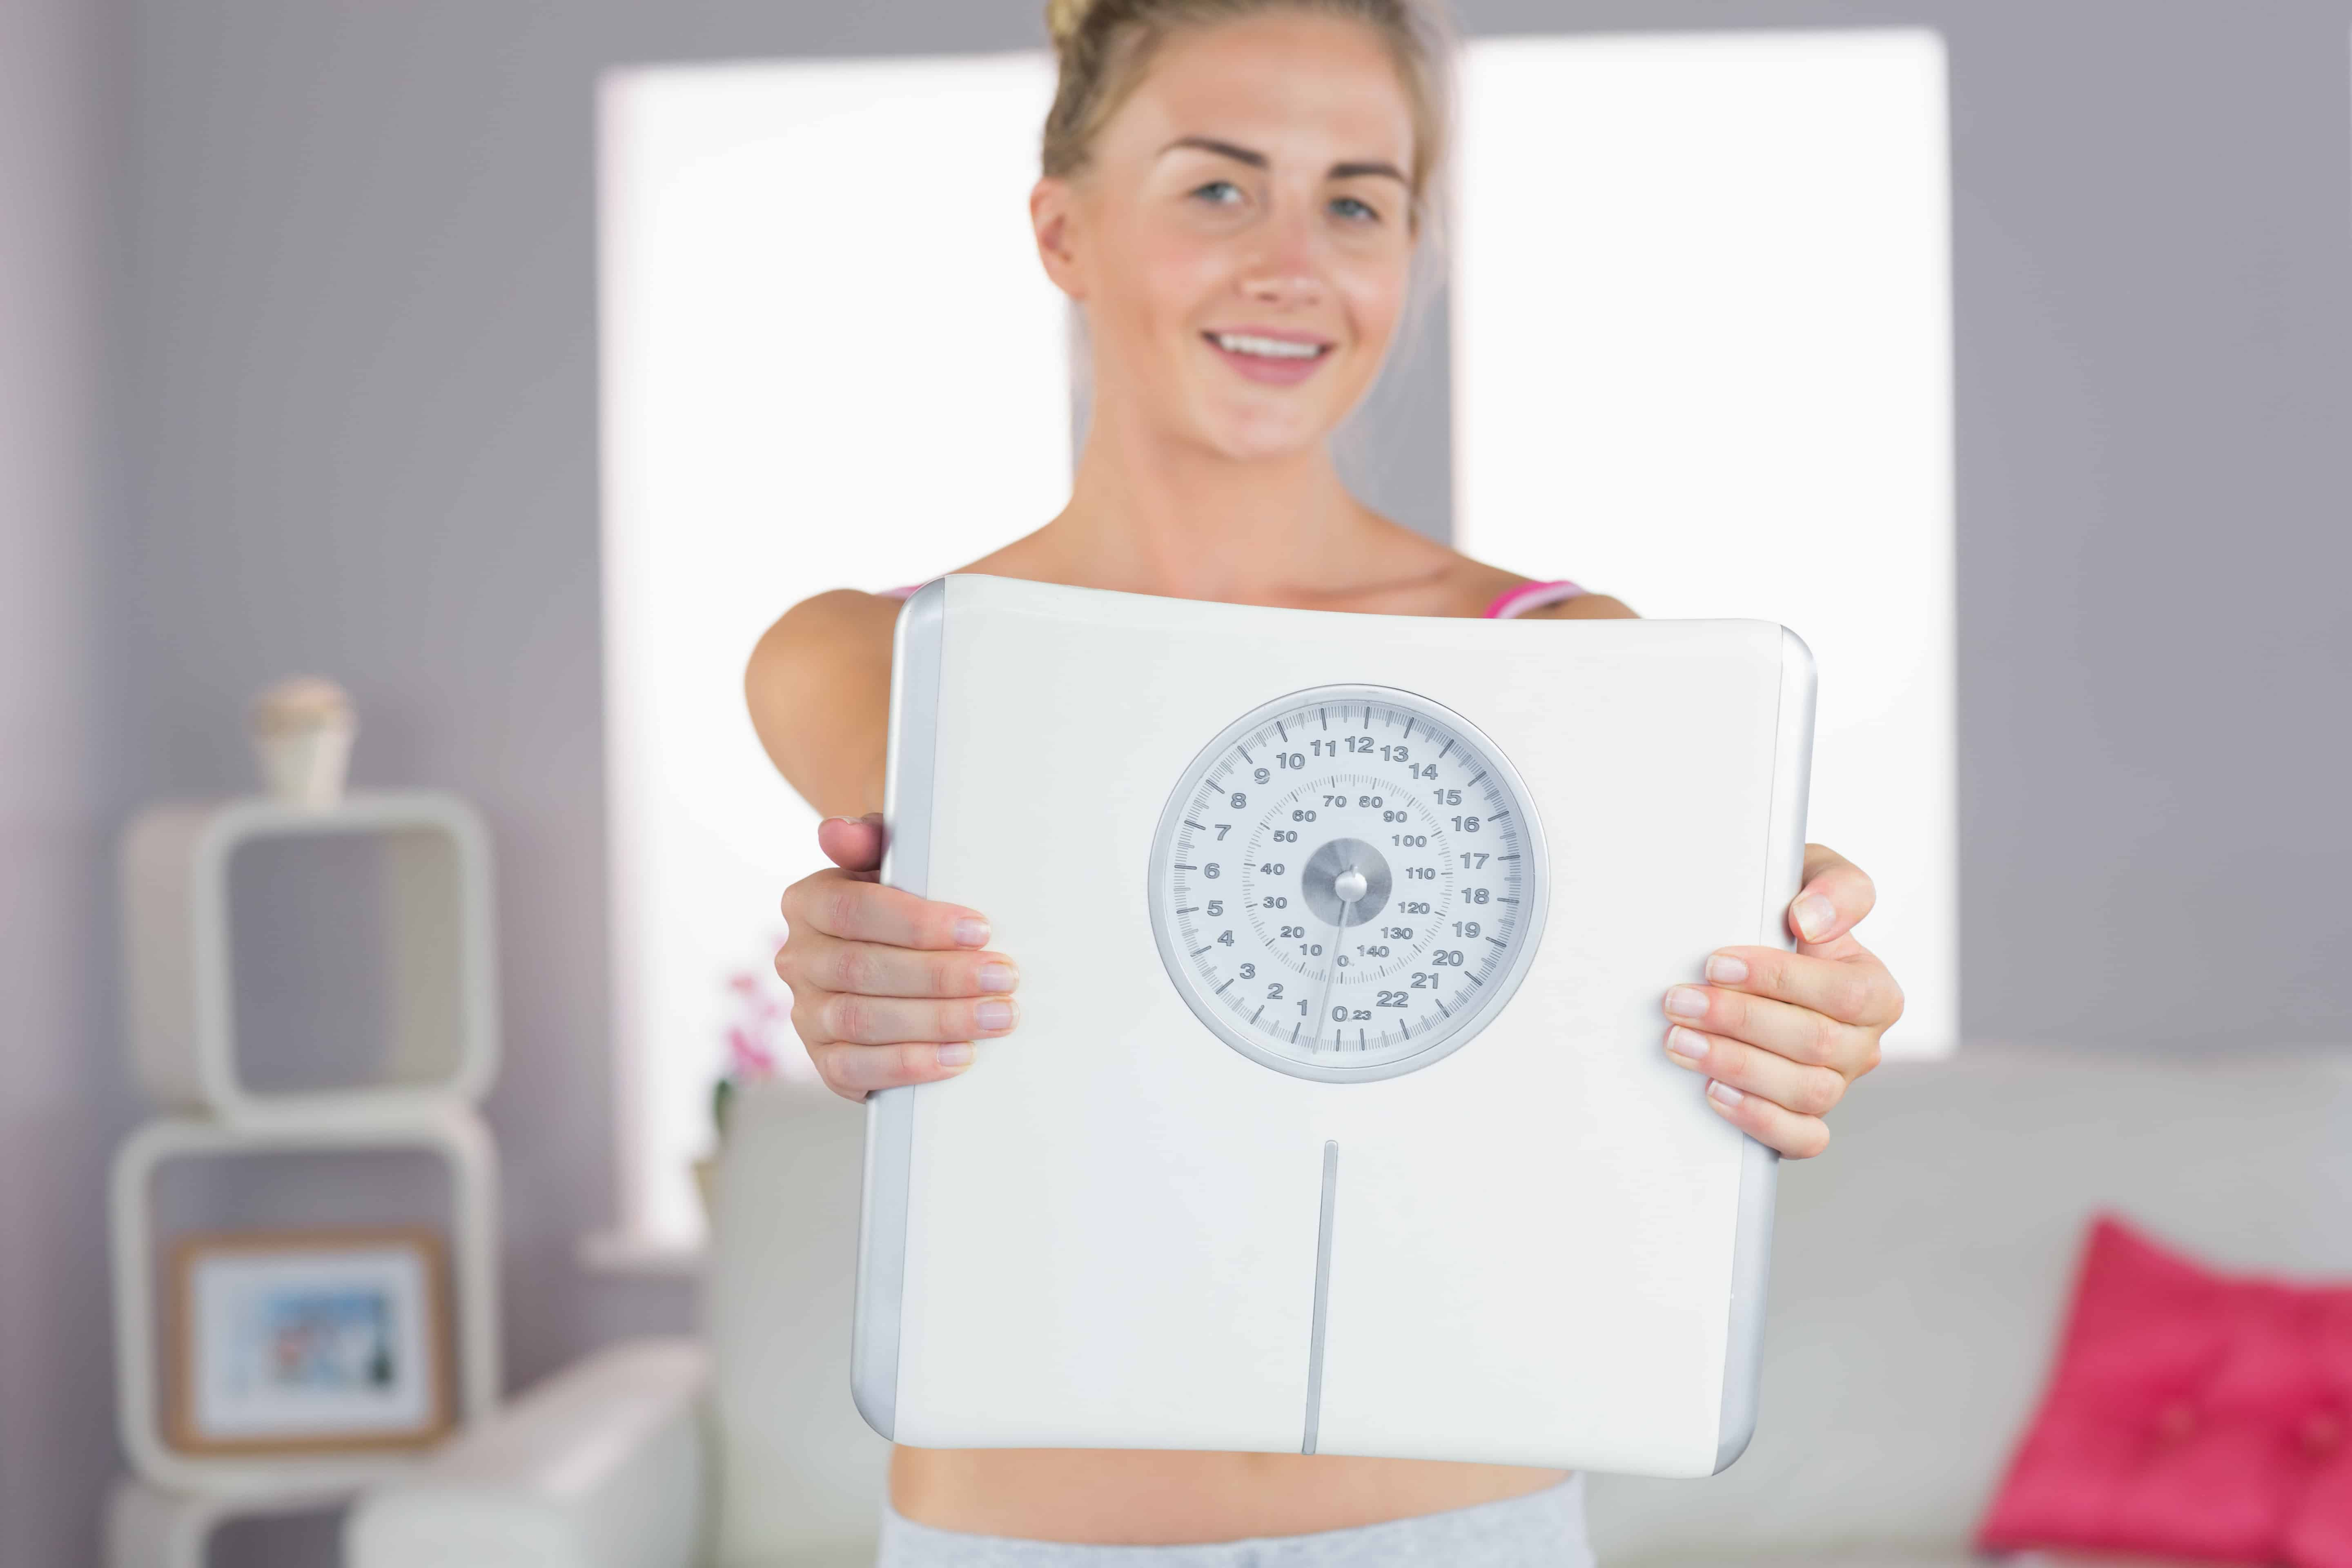 The Best Scales For Weight Loss - My Weigh In